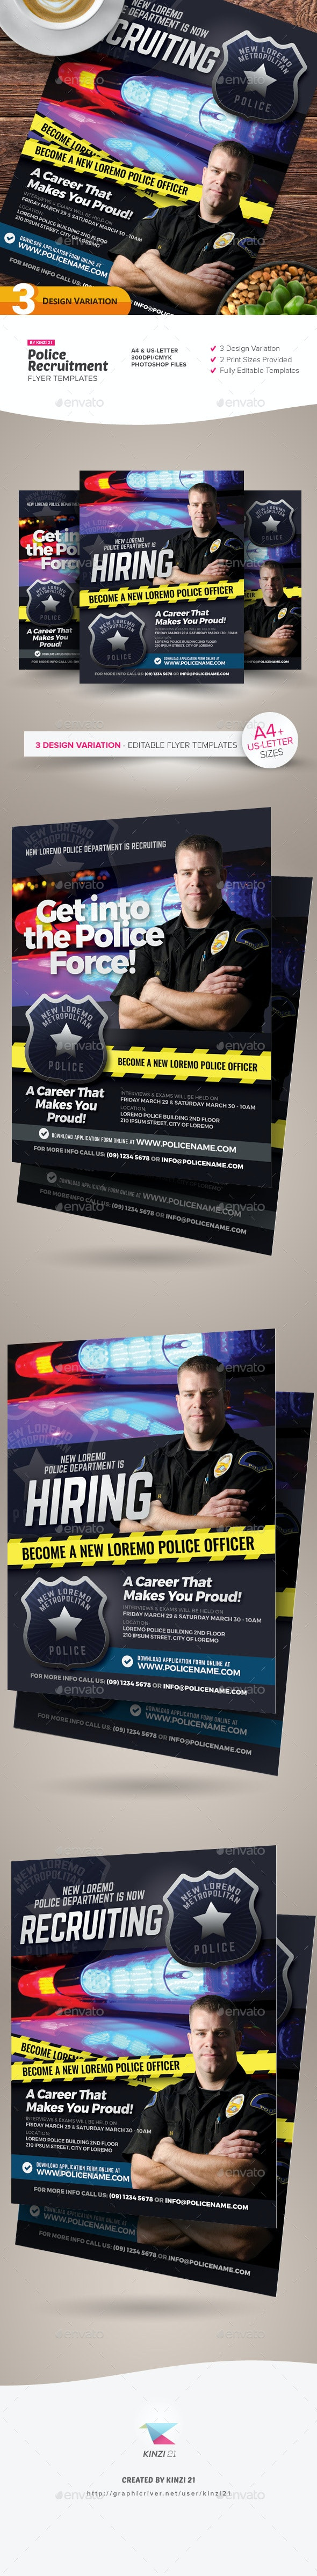 Police Recruitment Flyer Templates - Corporate Flyers